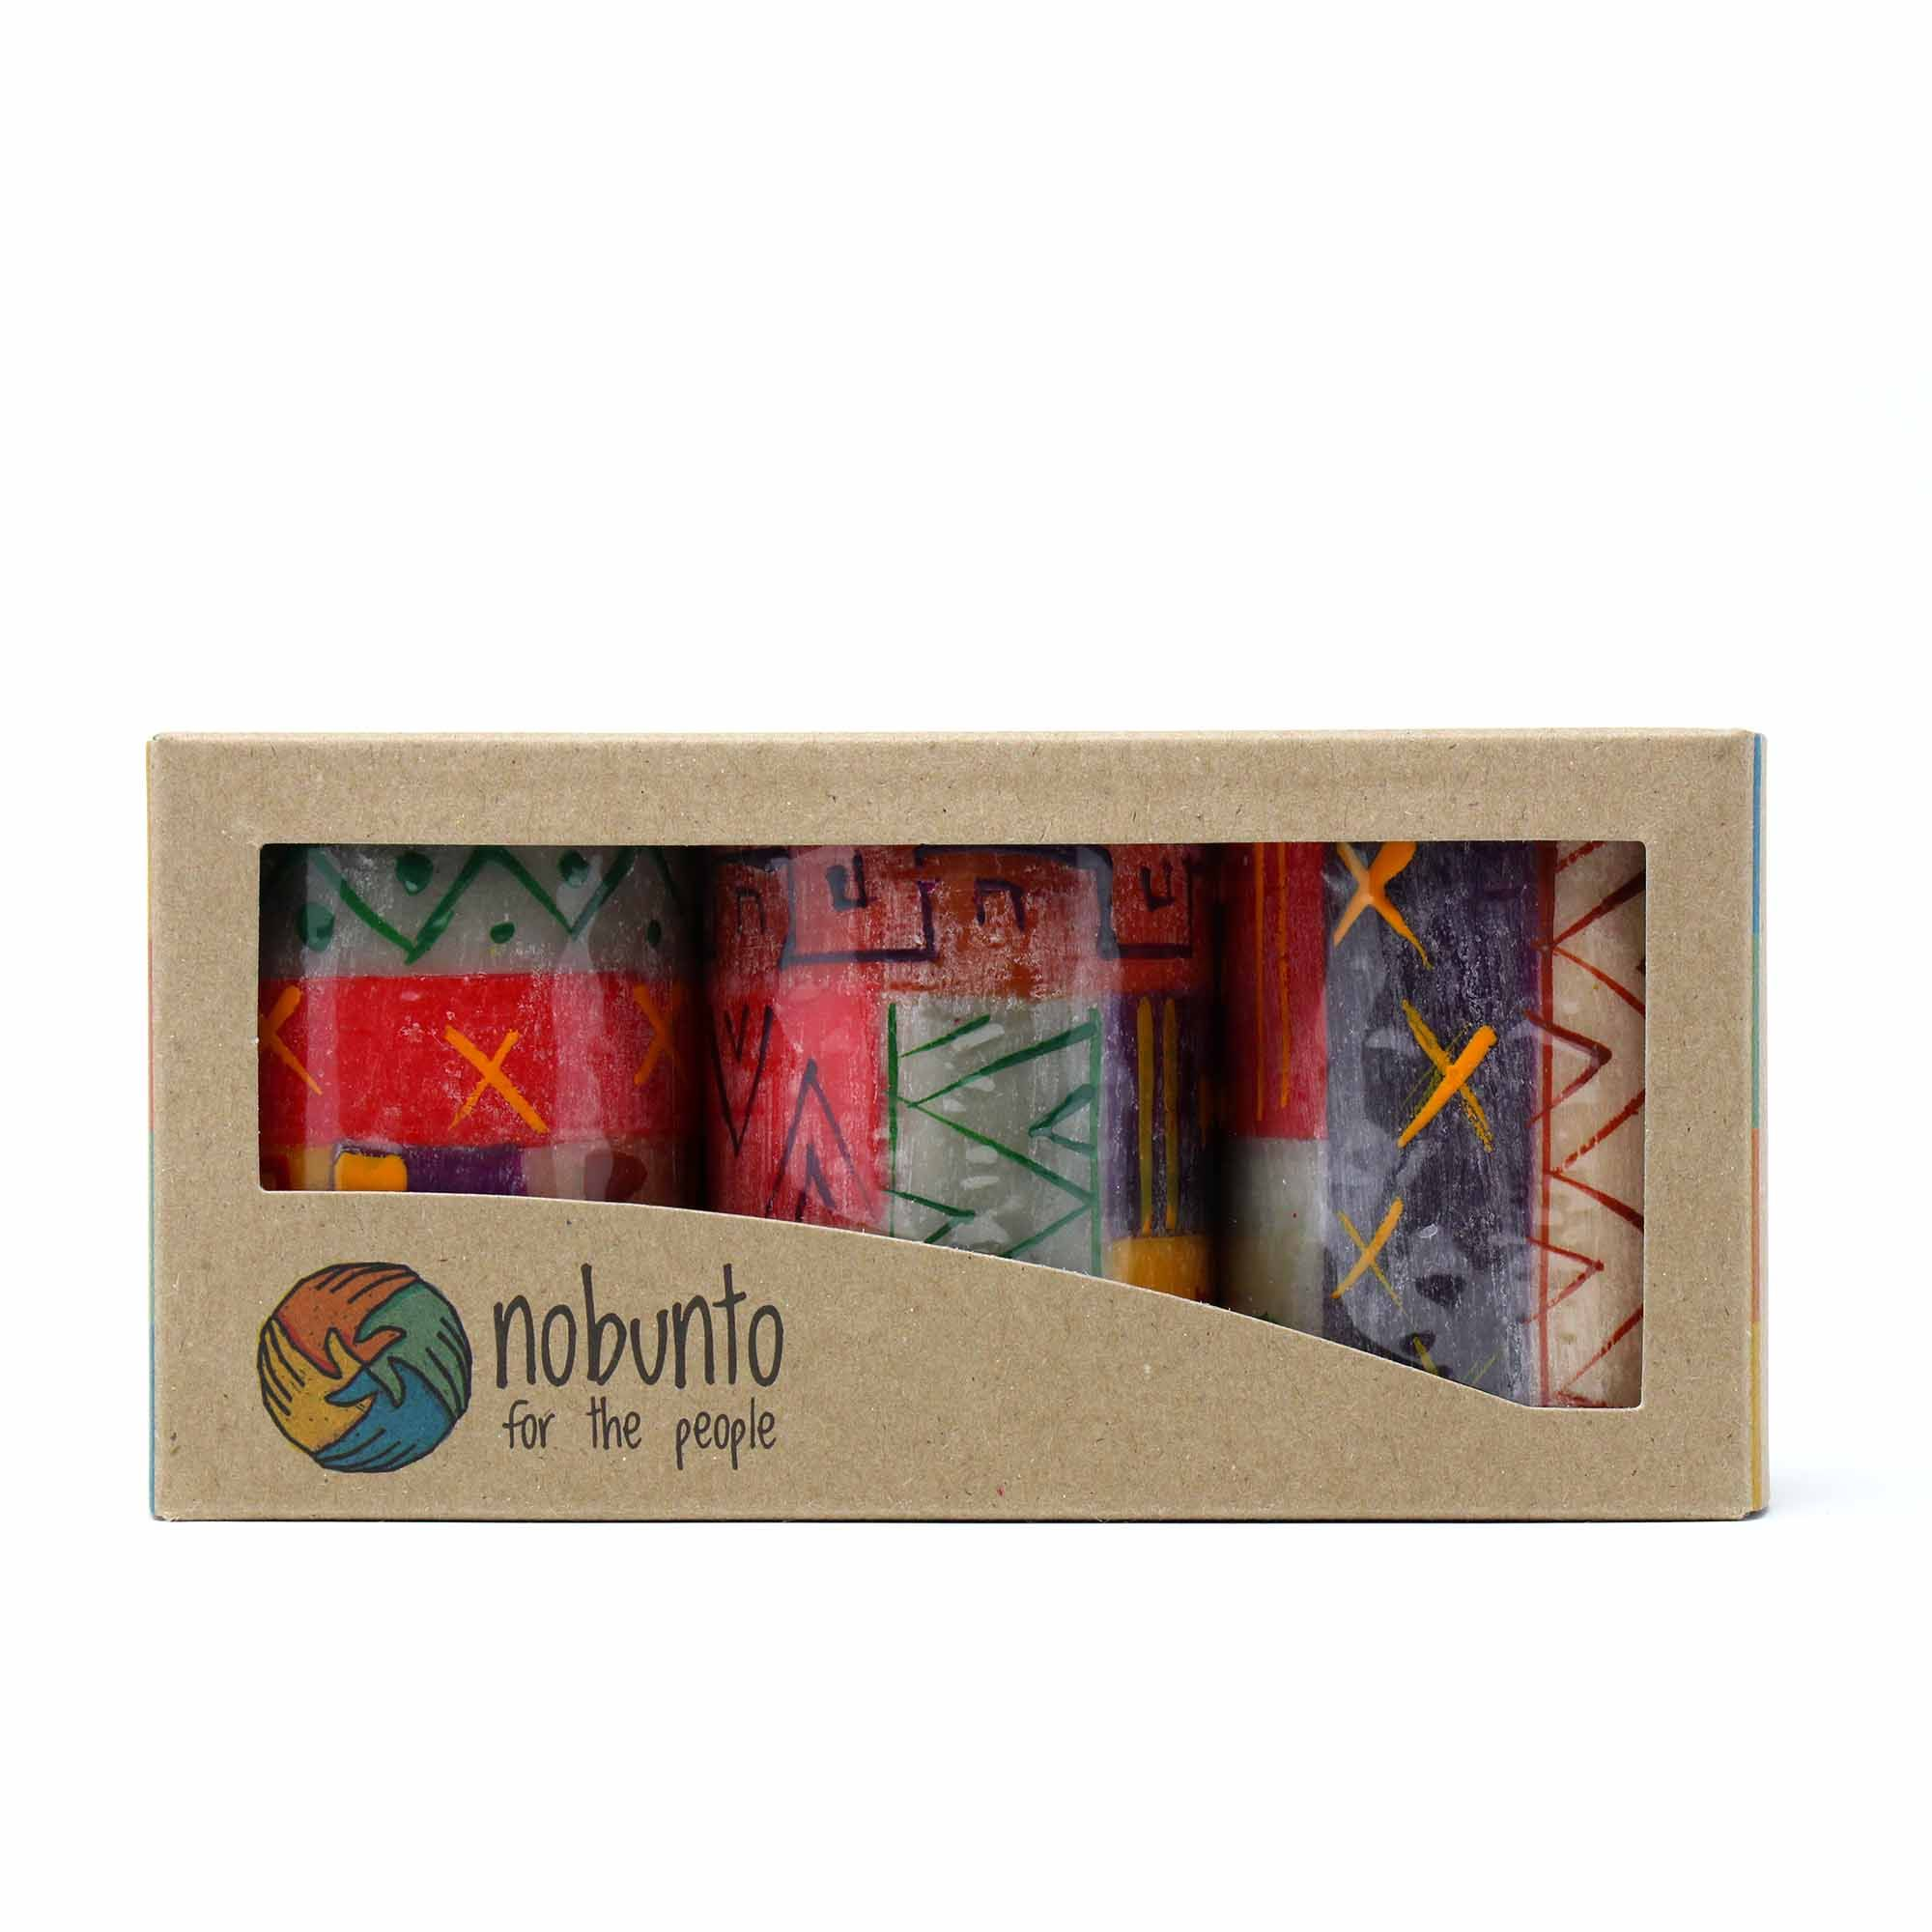 This set of three hand-painted candles comes in gift box. each candle is 2.5 inches tall by 1.75 inches in diameter. Meet the Artisans NOBUNTO is a South African Fair Trade company that creates high quality hand-painted candles, ceramics and handcrafted greeting cards with the utmost attention to detail using mainly African inspired designs. Their mission is, in a region with high unemployment, to alleviate poverty, not only through development of industry but to be socially, ethically, and sust